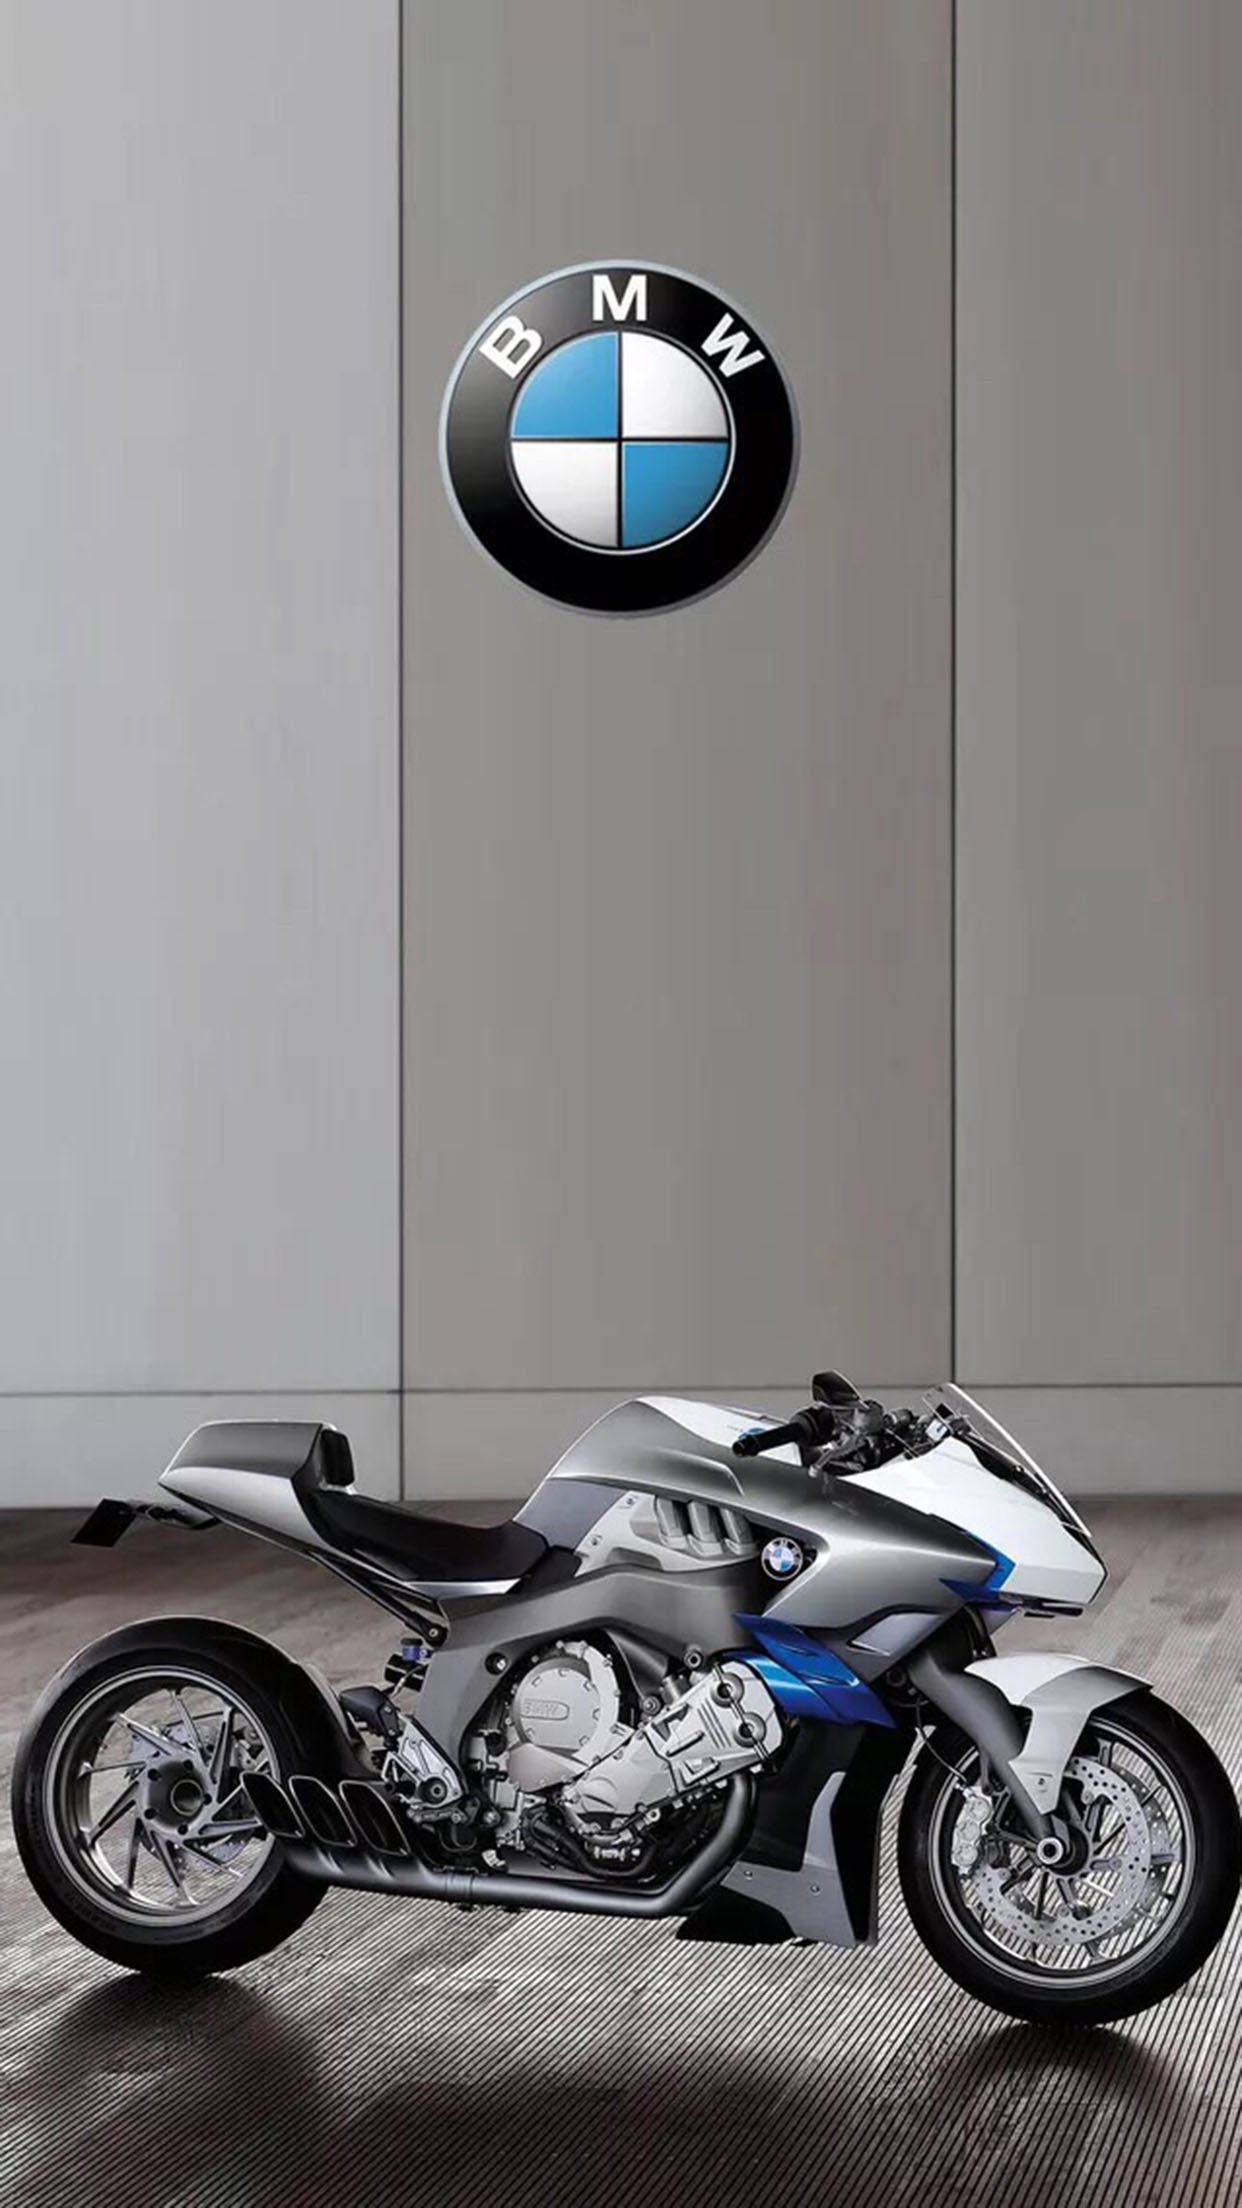 BMW BMW 2 3Wallpapers iPhone Parallax BMW 2